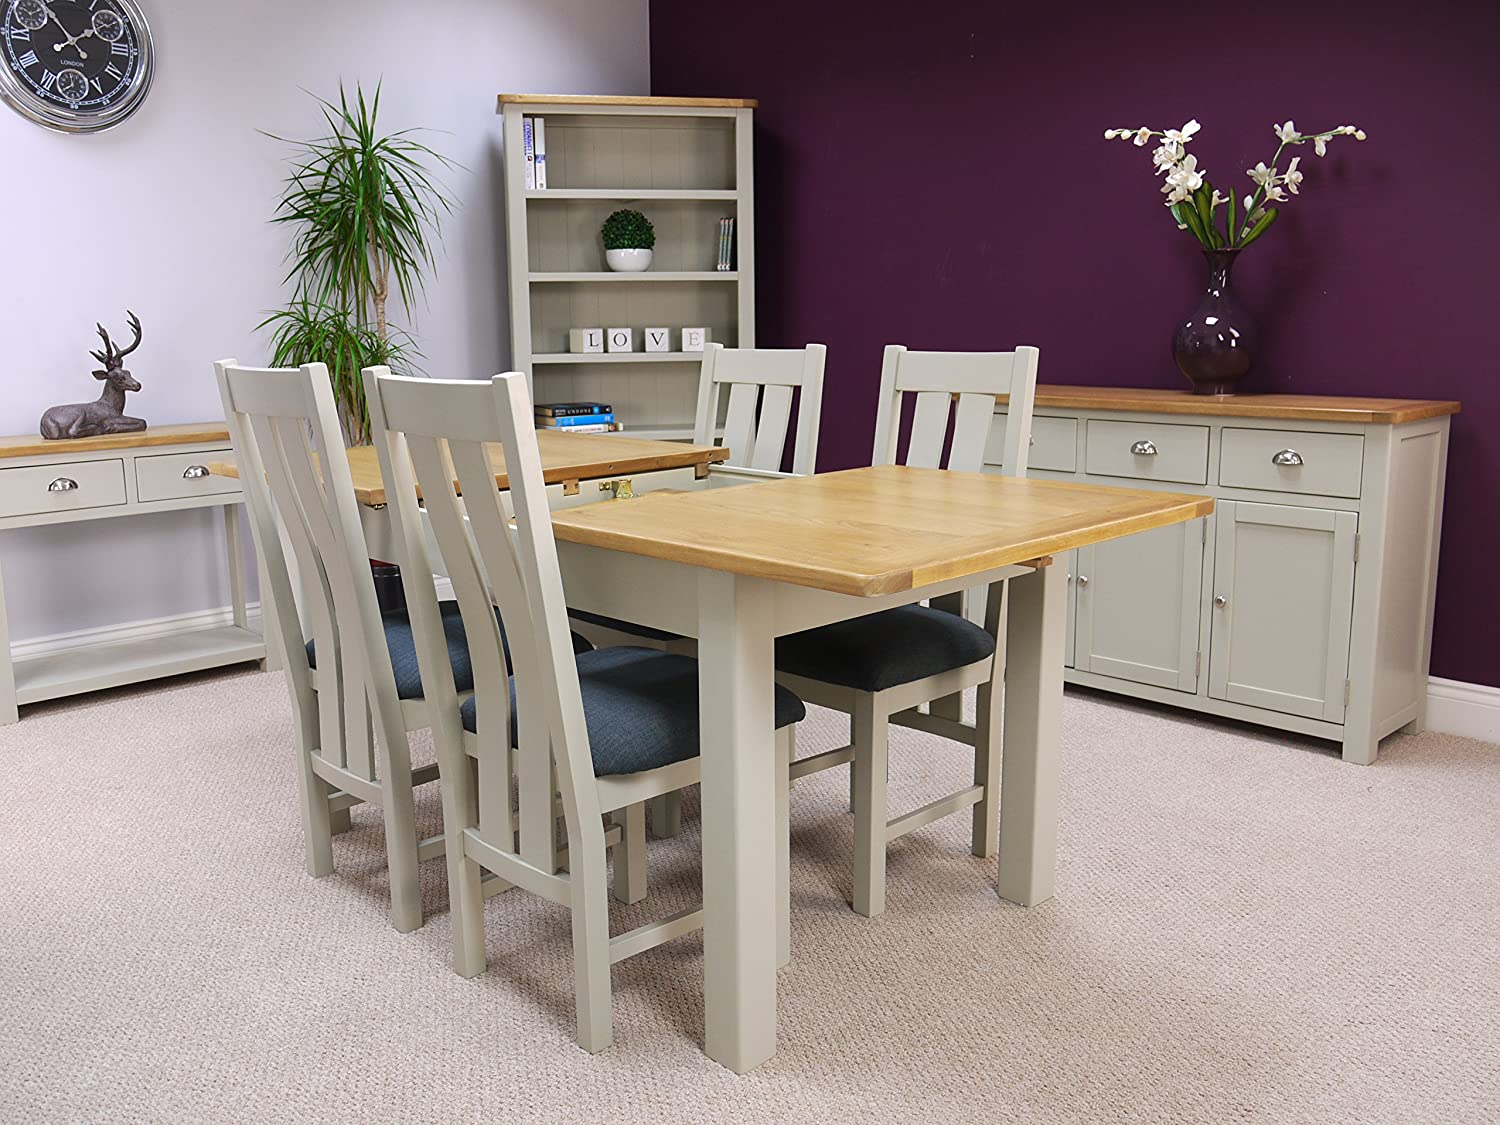 aspen painted oak sage grey extending dining table and 4 chairs dining table set amazoncouk kitchen home - Oak Dining Table Set